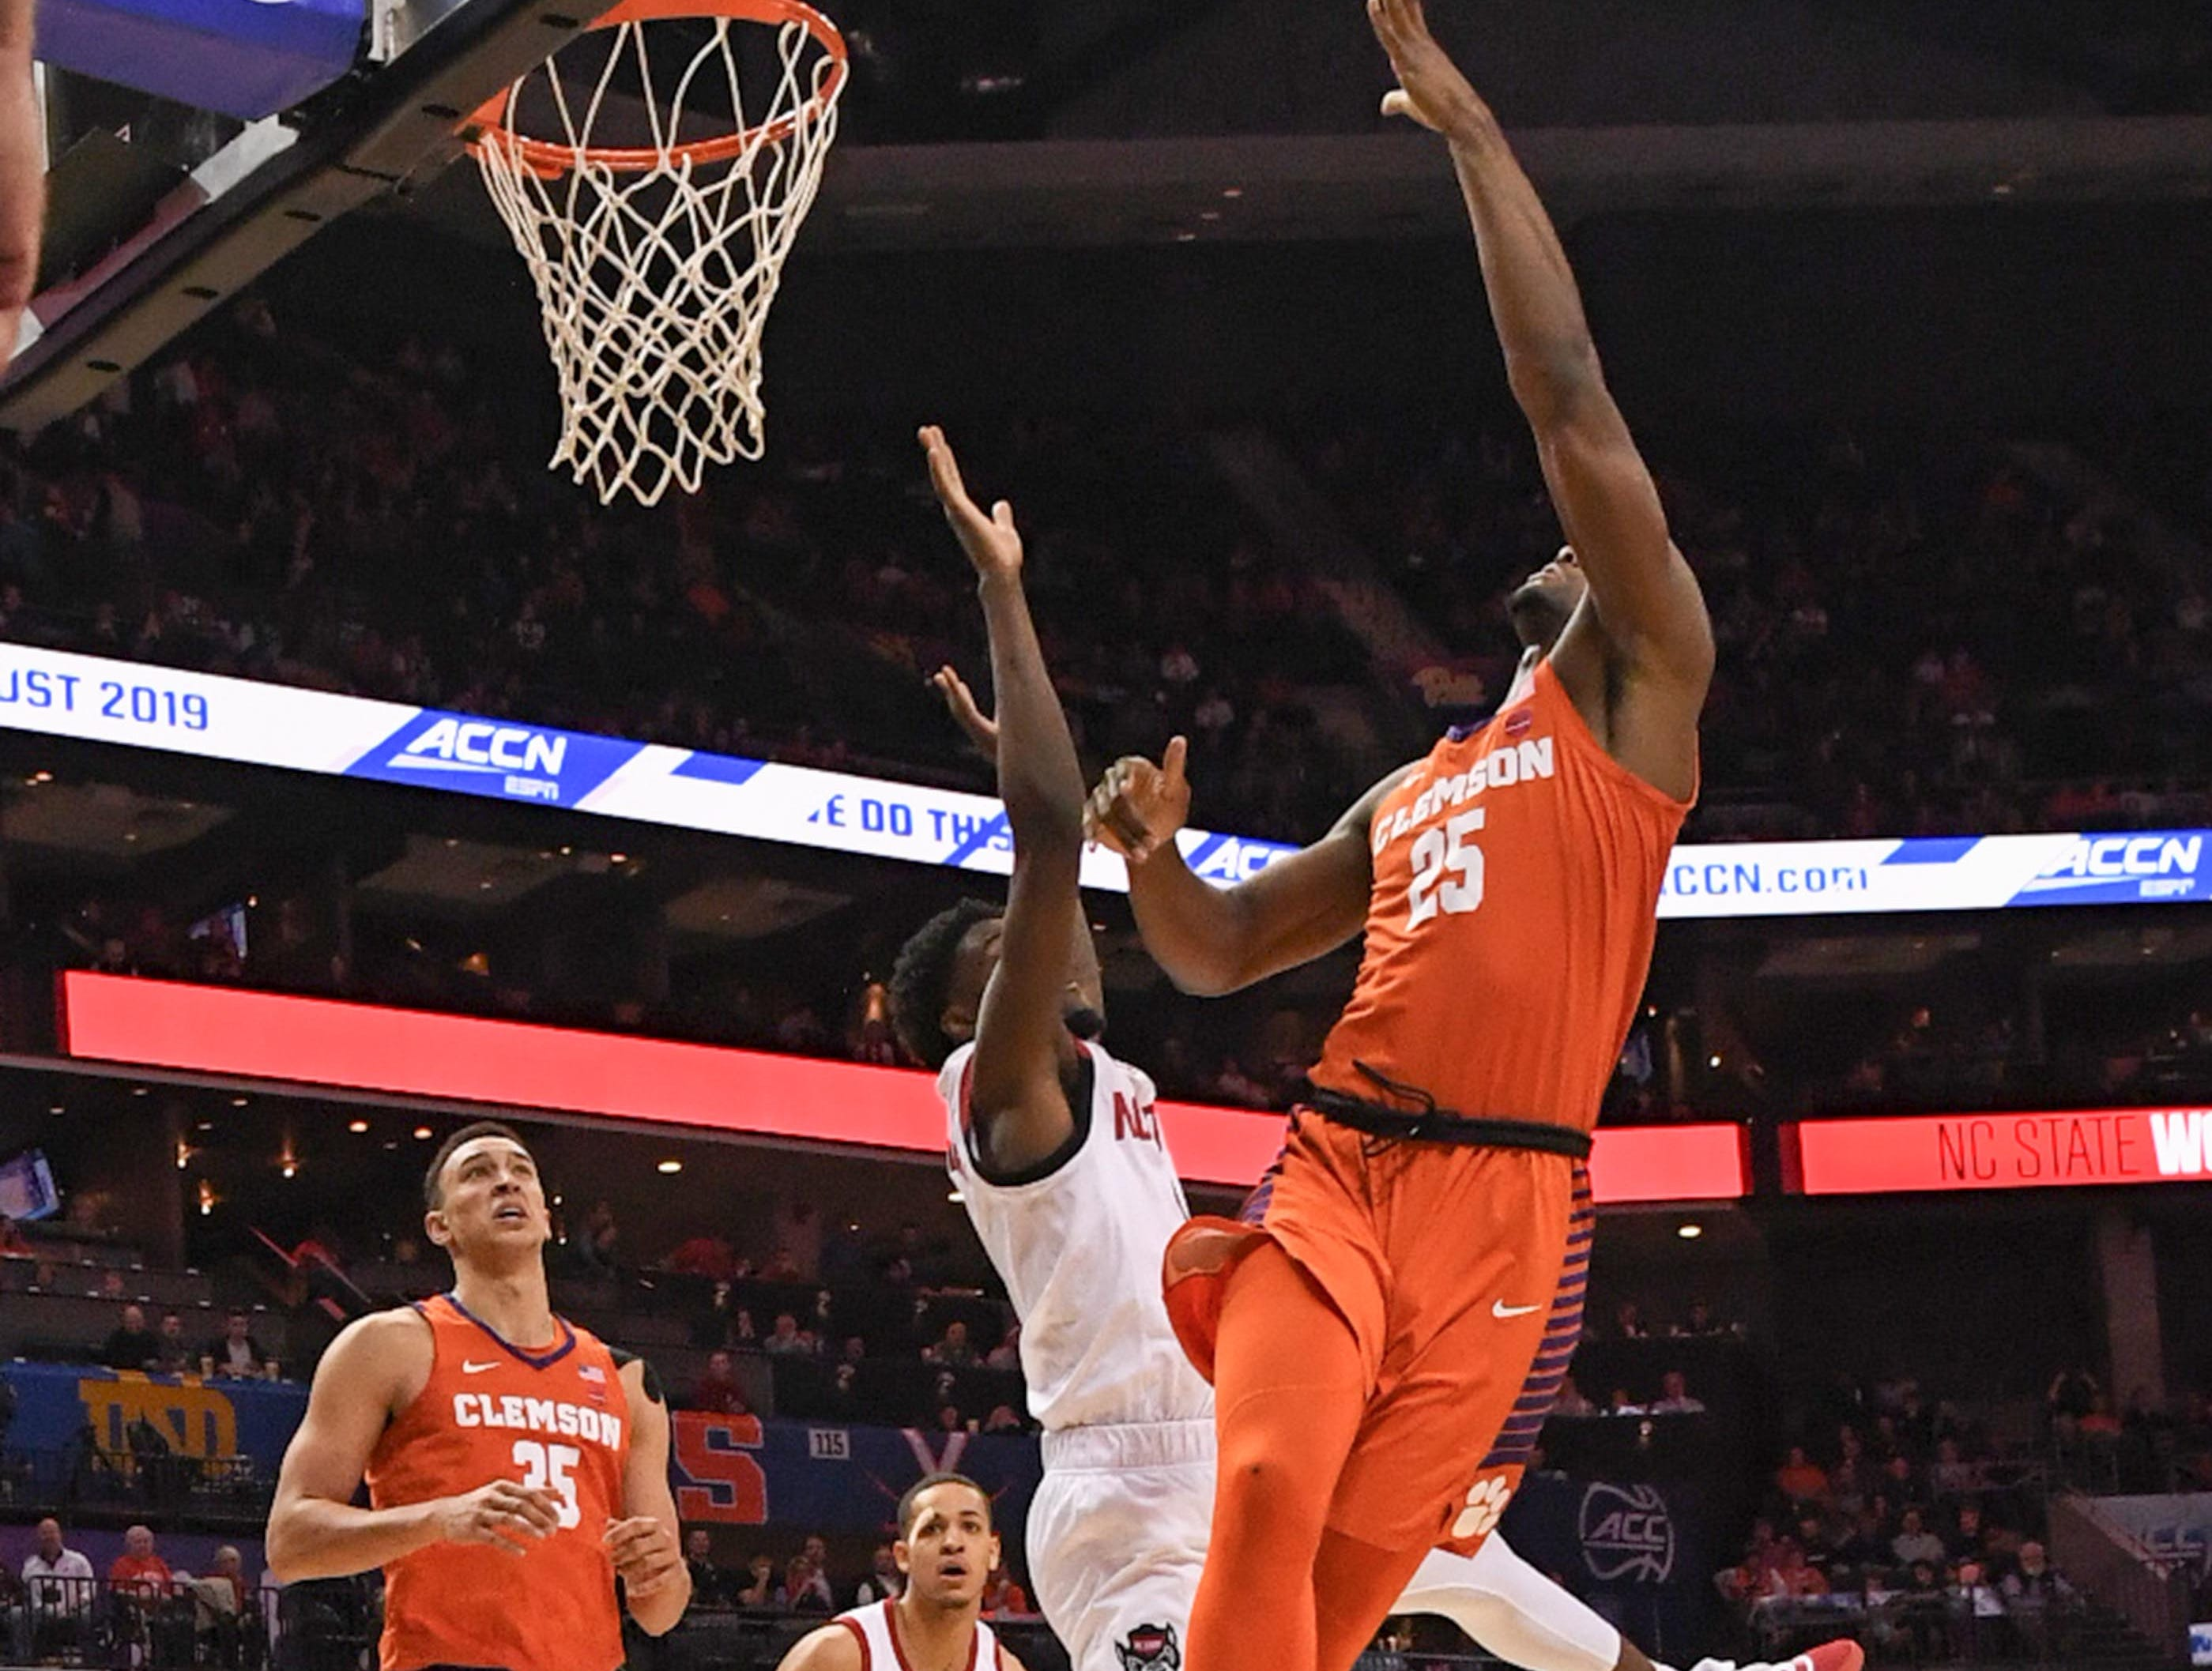 Clemson forward Aamir Simms (25) shoots during the second half at the Spectrum Center in Charlotte, N.C. Tuesday, March 12, 2019.